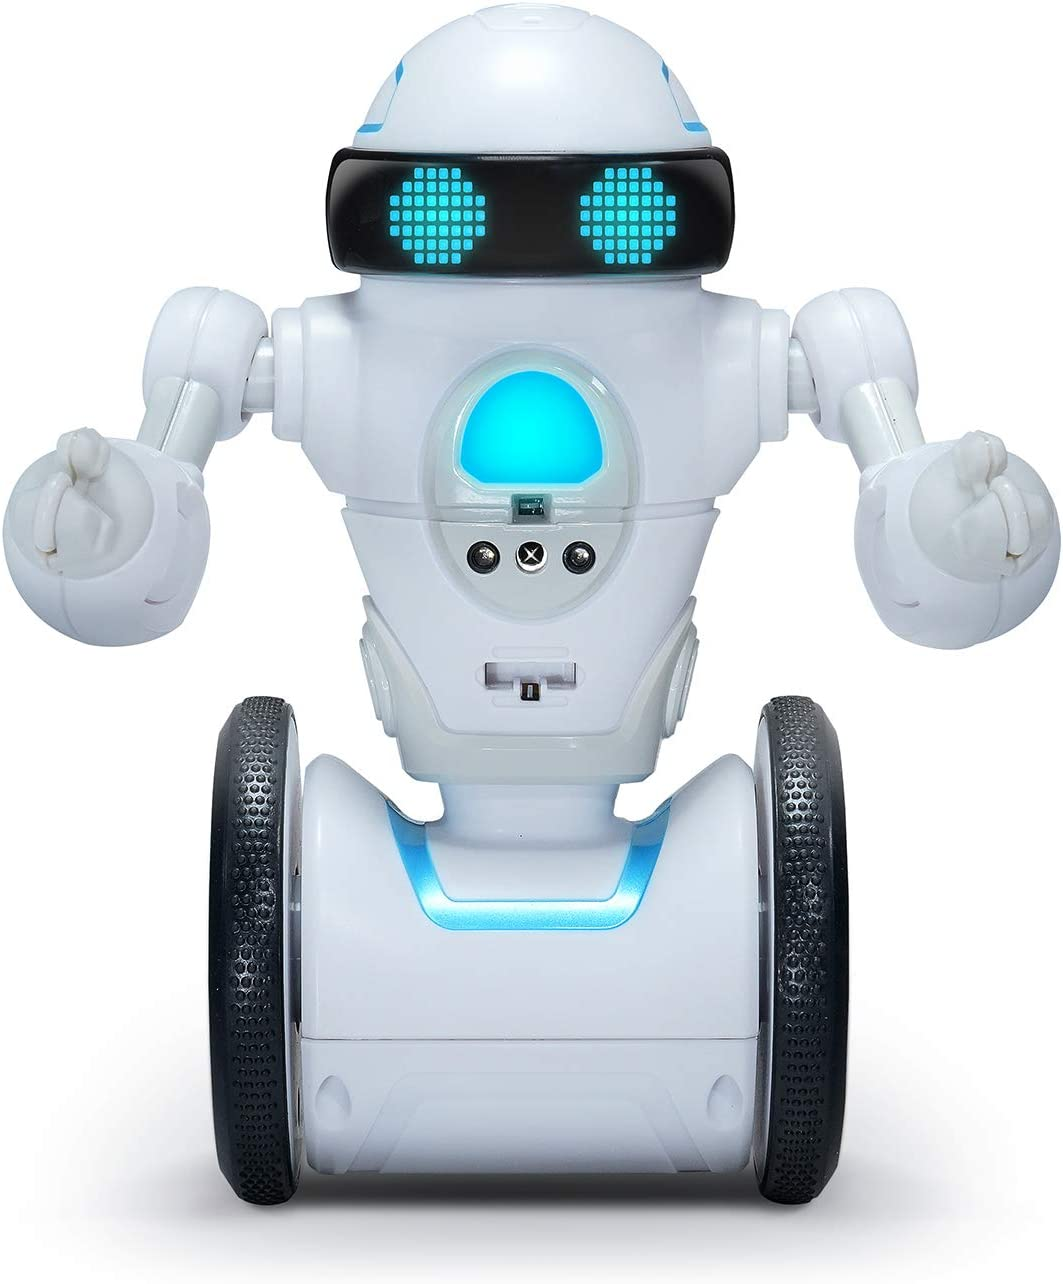 WowWee MiP Arcade - Interactive Self-Balancing Robot - Play App-Enabled or Screenless Games with RC, Dancing & Multiplayer Modes - Includes Tray & Basketball Accessories - for Kids Ages 6 & Up